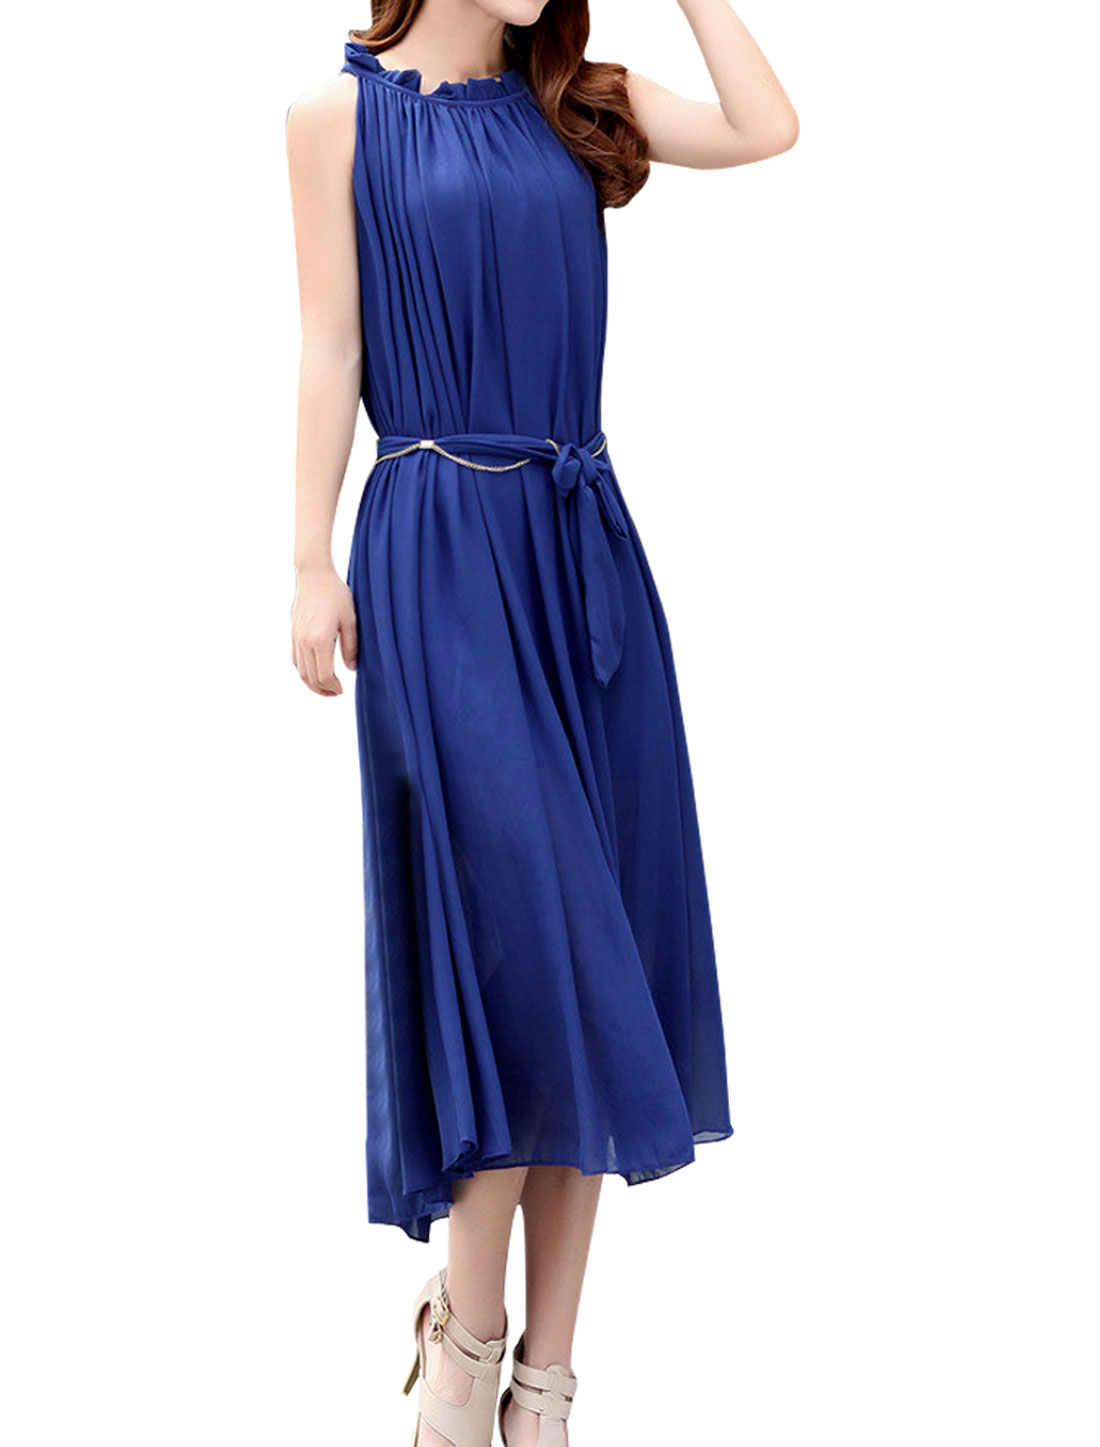 Ladies Boat Neck Pullover Sleeveless Dress Royal Blue w Waist Strap M